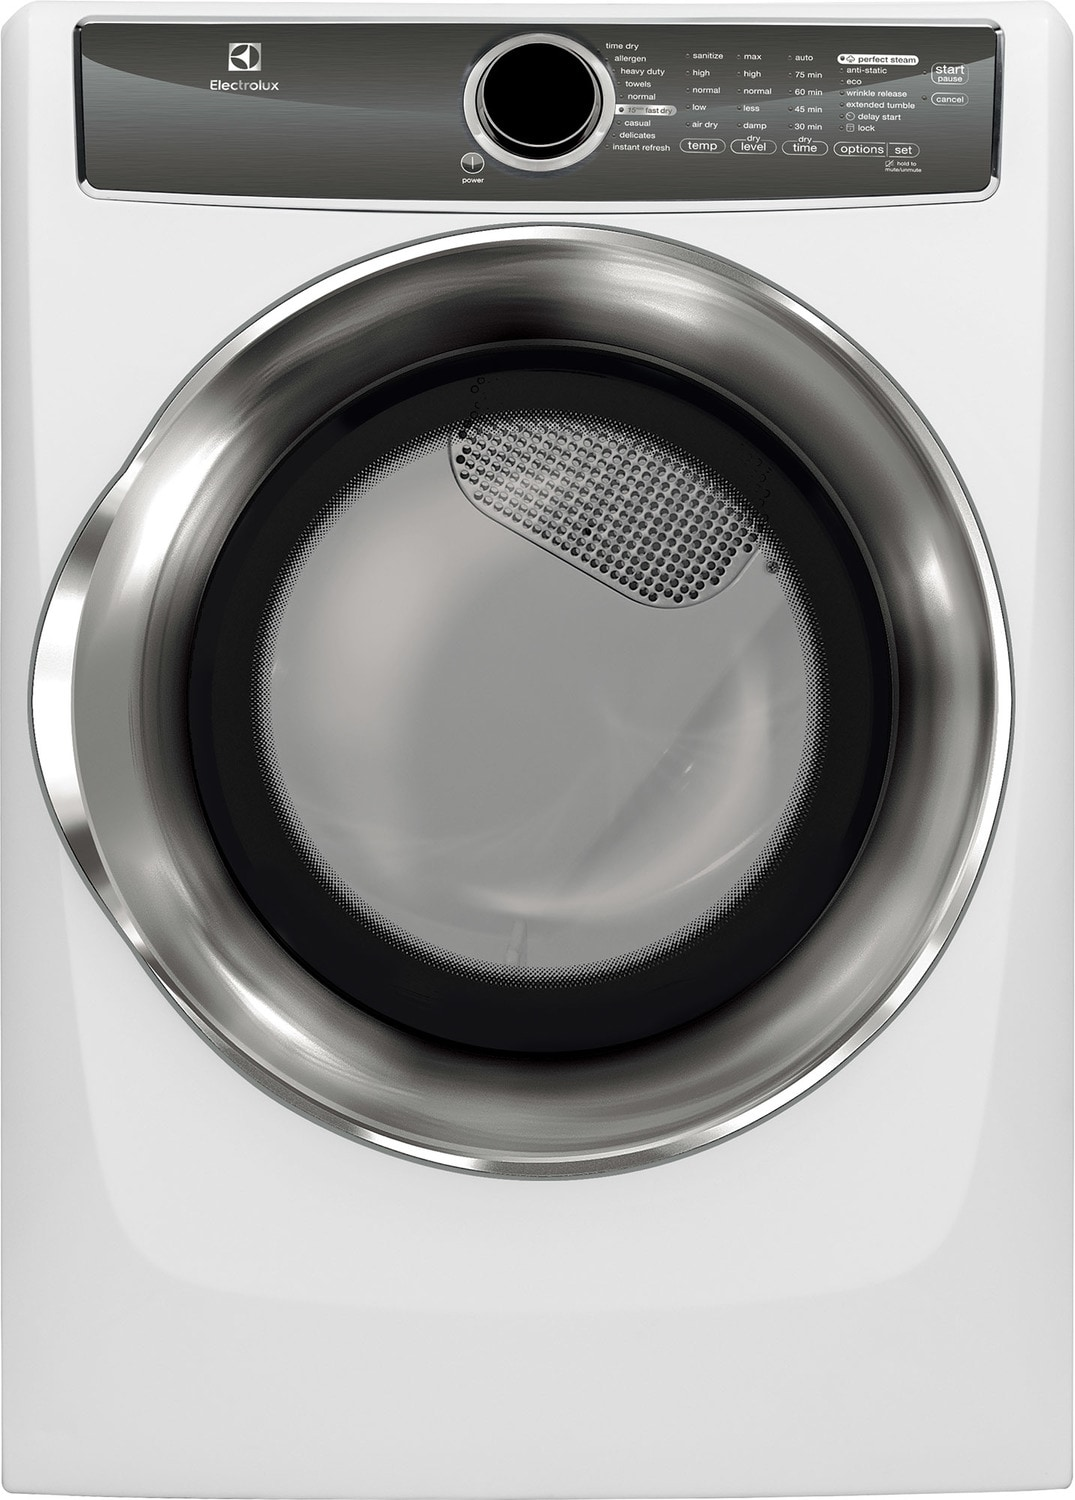 Electrolux White Electric Dryer (8.0 Cu. Ft.) - EFMC617SIW